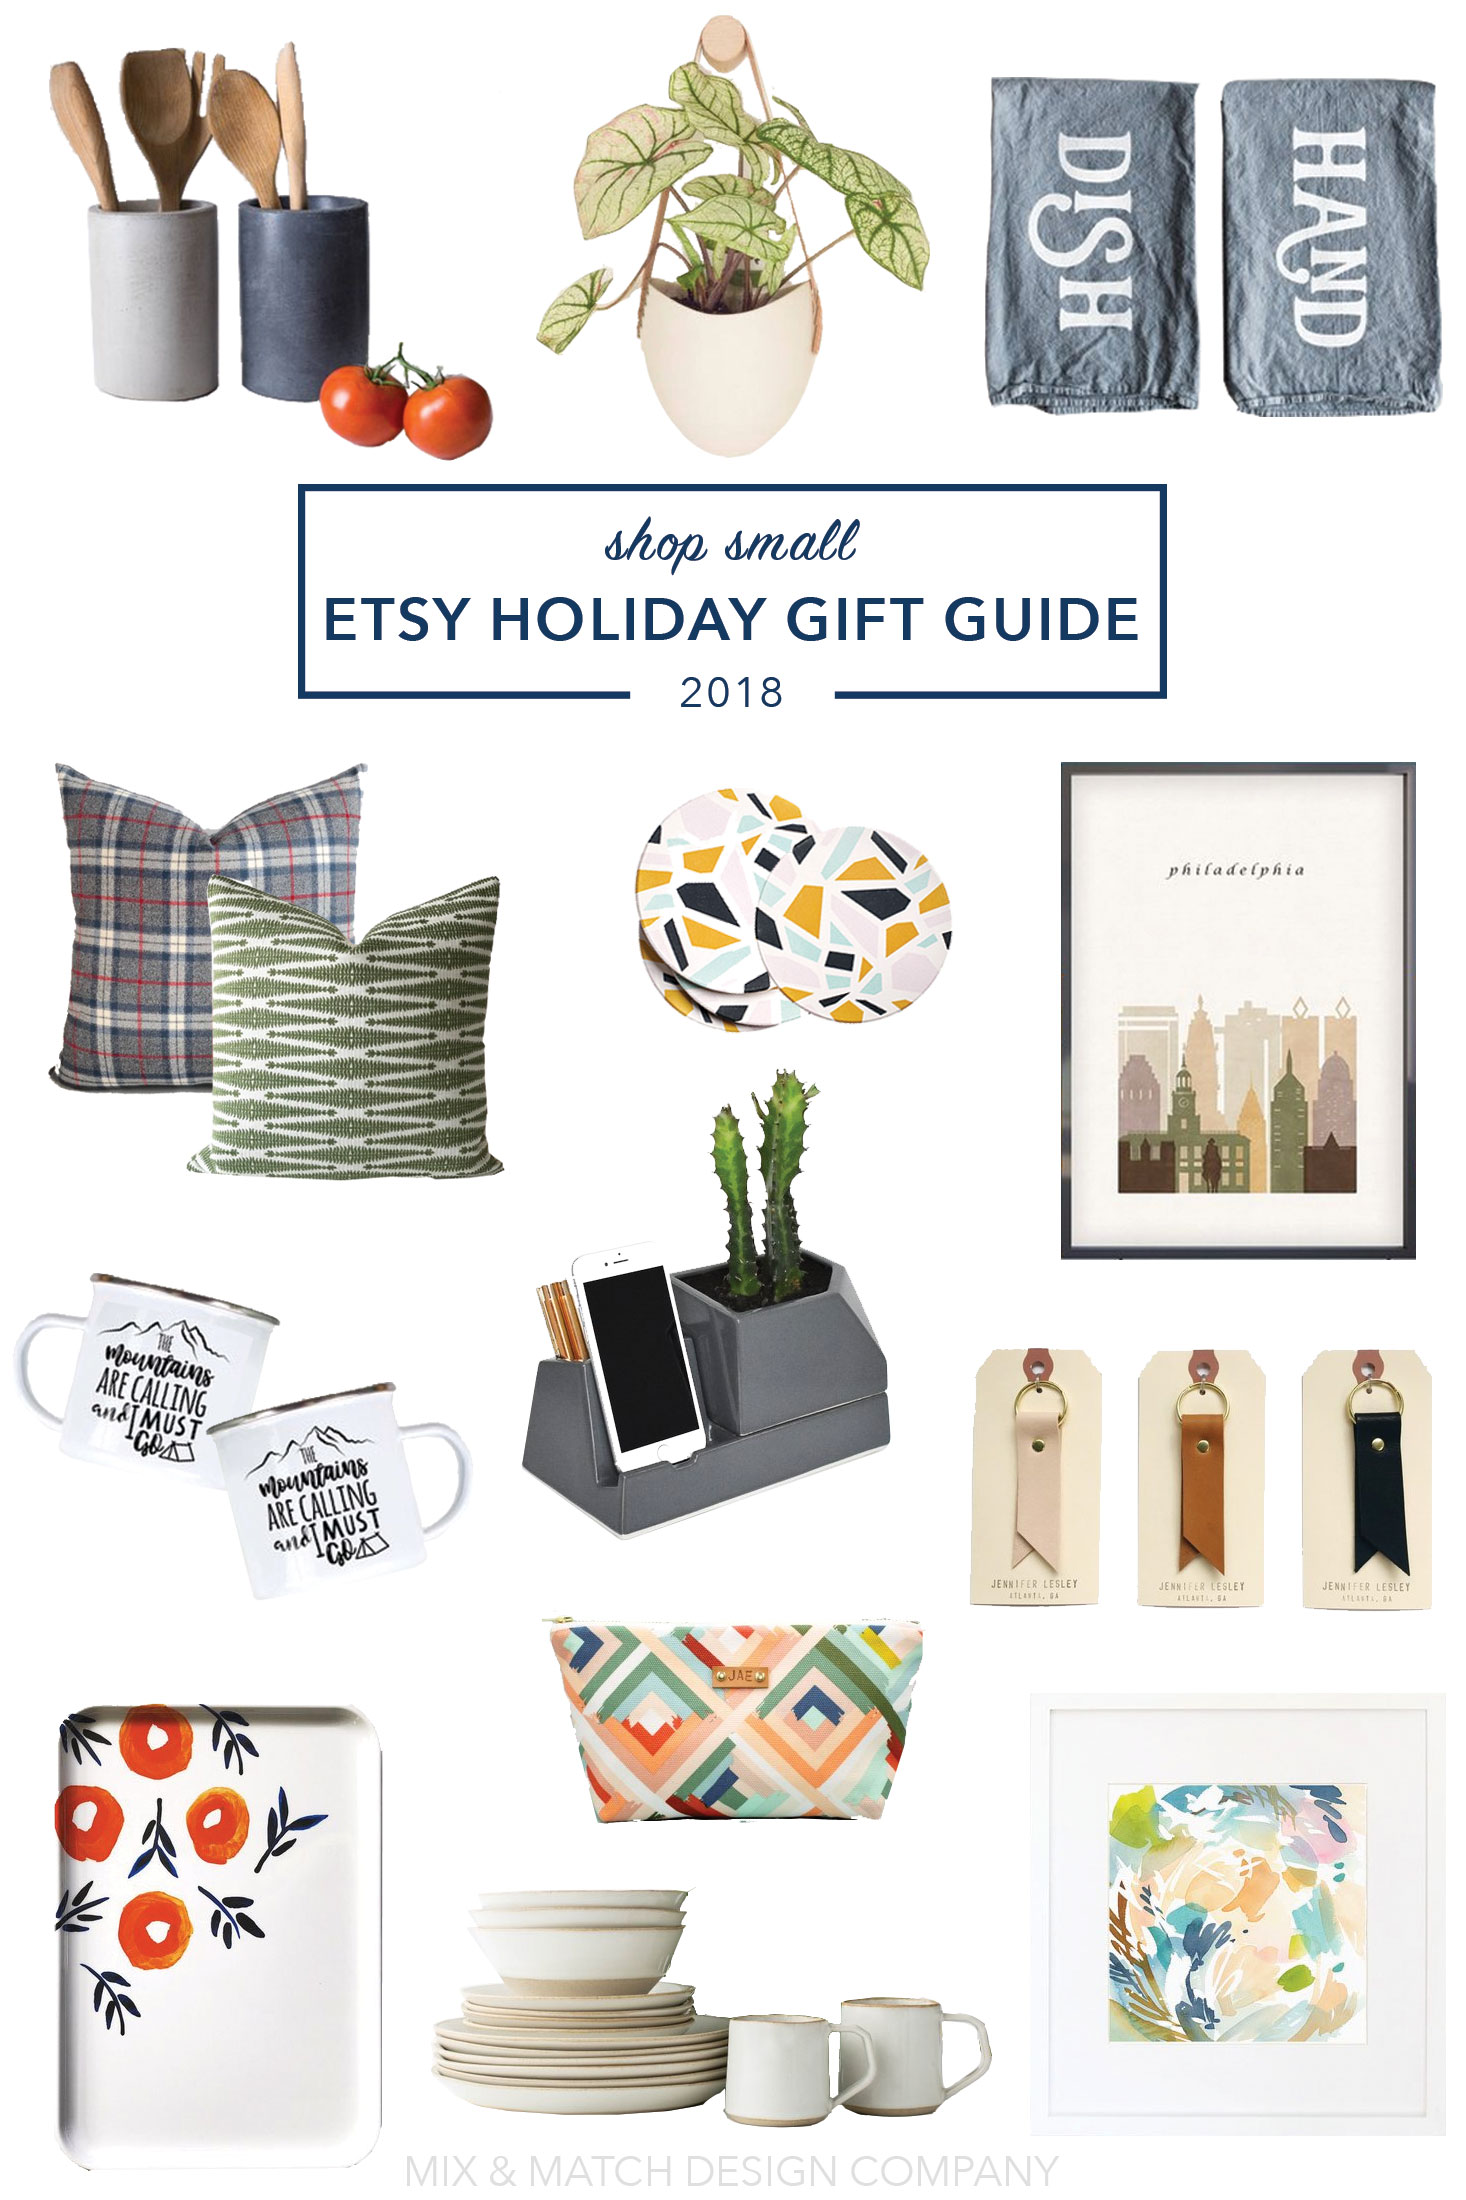 Looking to support small businesses with your gift giving this holiday season? I've got you covered! You'll find everything from art to stocking stuffers, tabletop and kitchen pieces to iphone stands with planters in this gift guide! \\ #2018holidaygiftguide #moderngiftguide #etsygiftguide